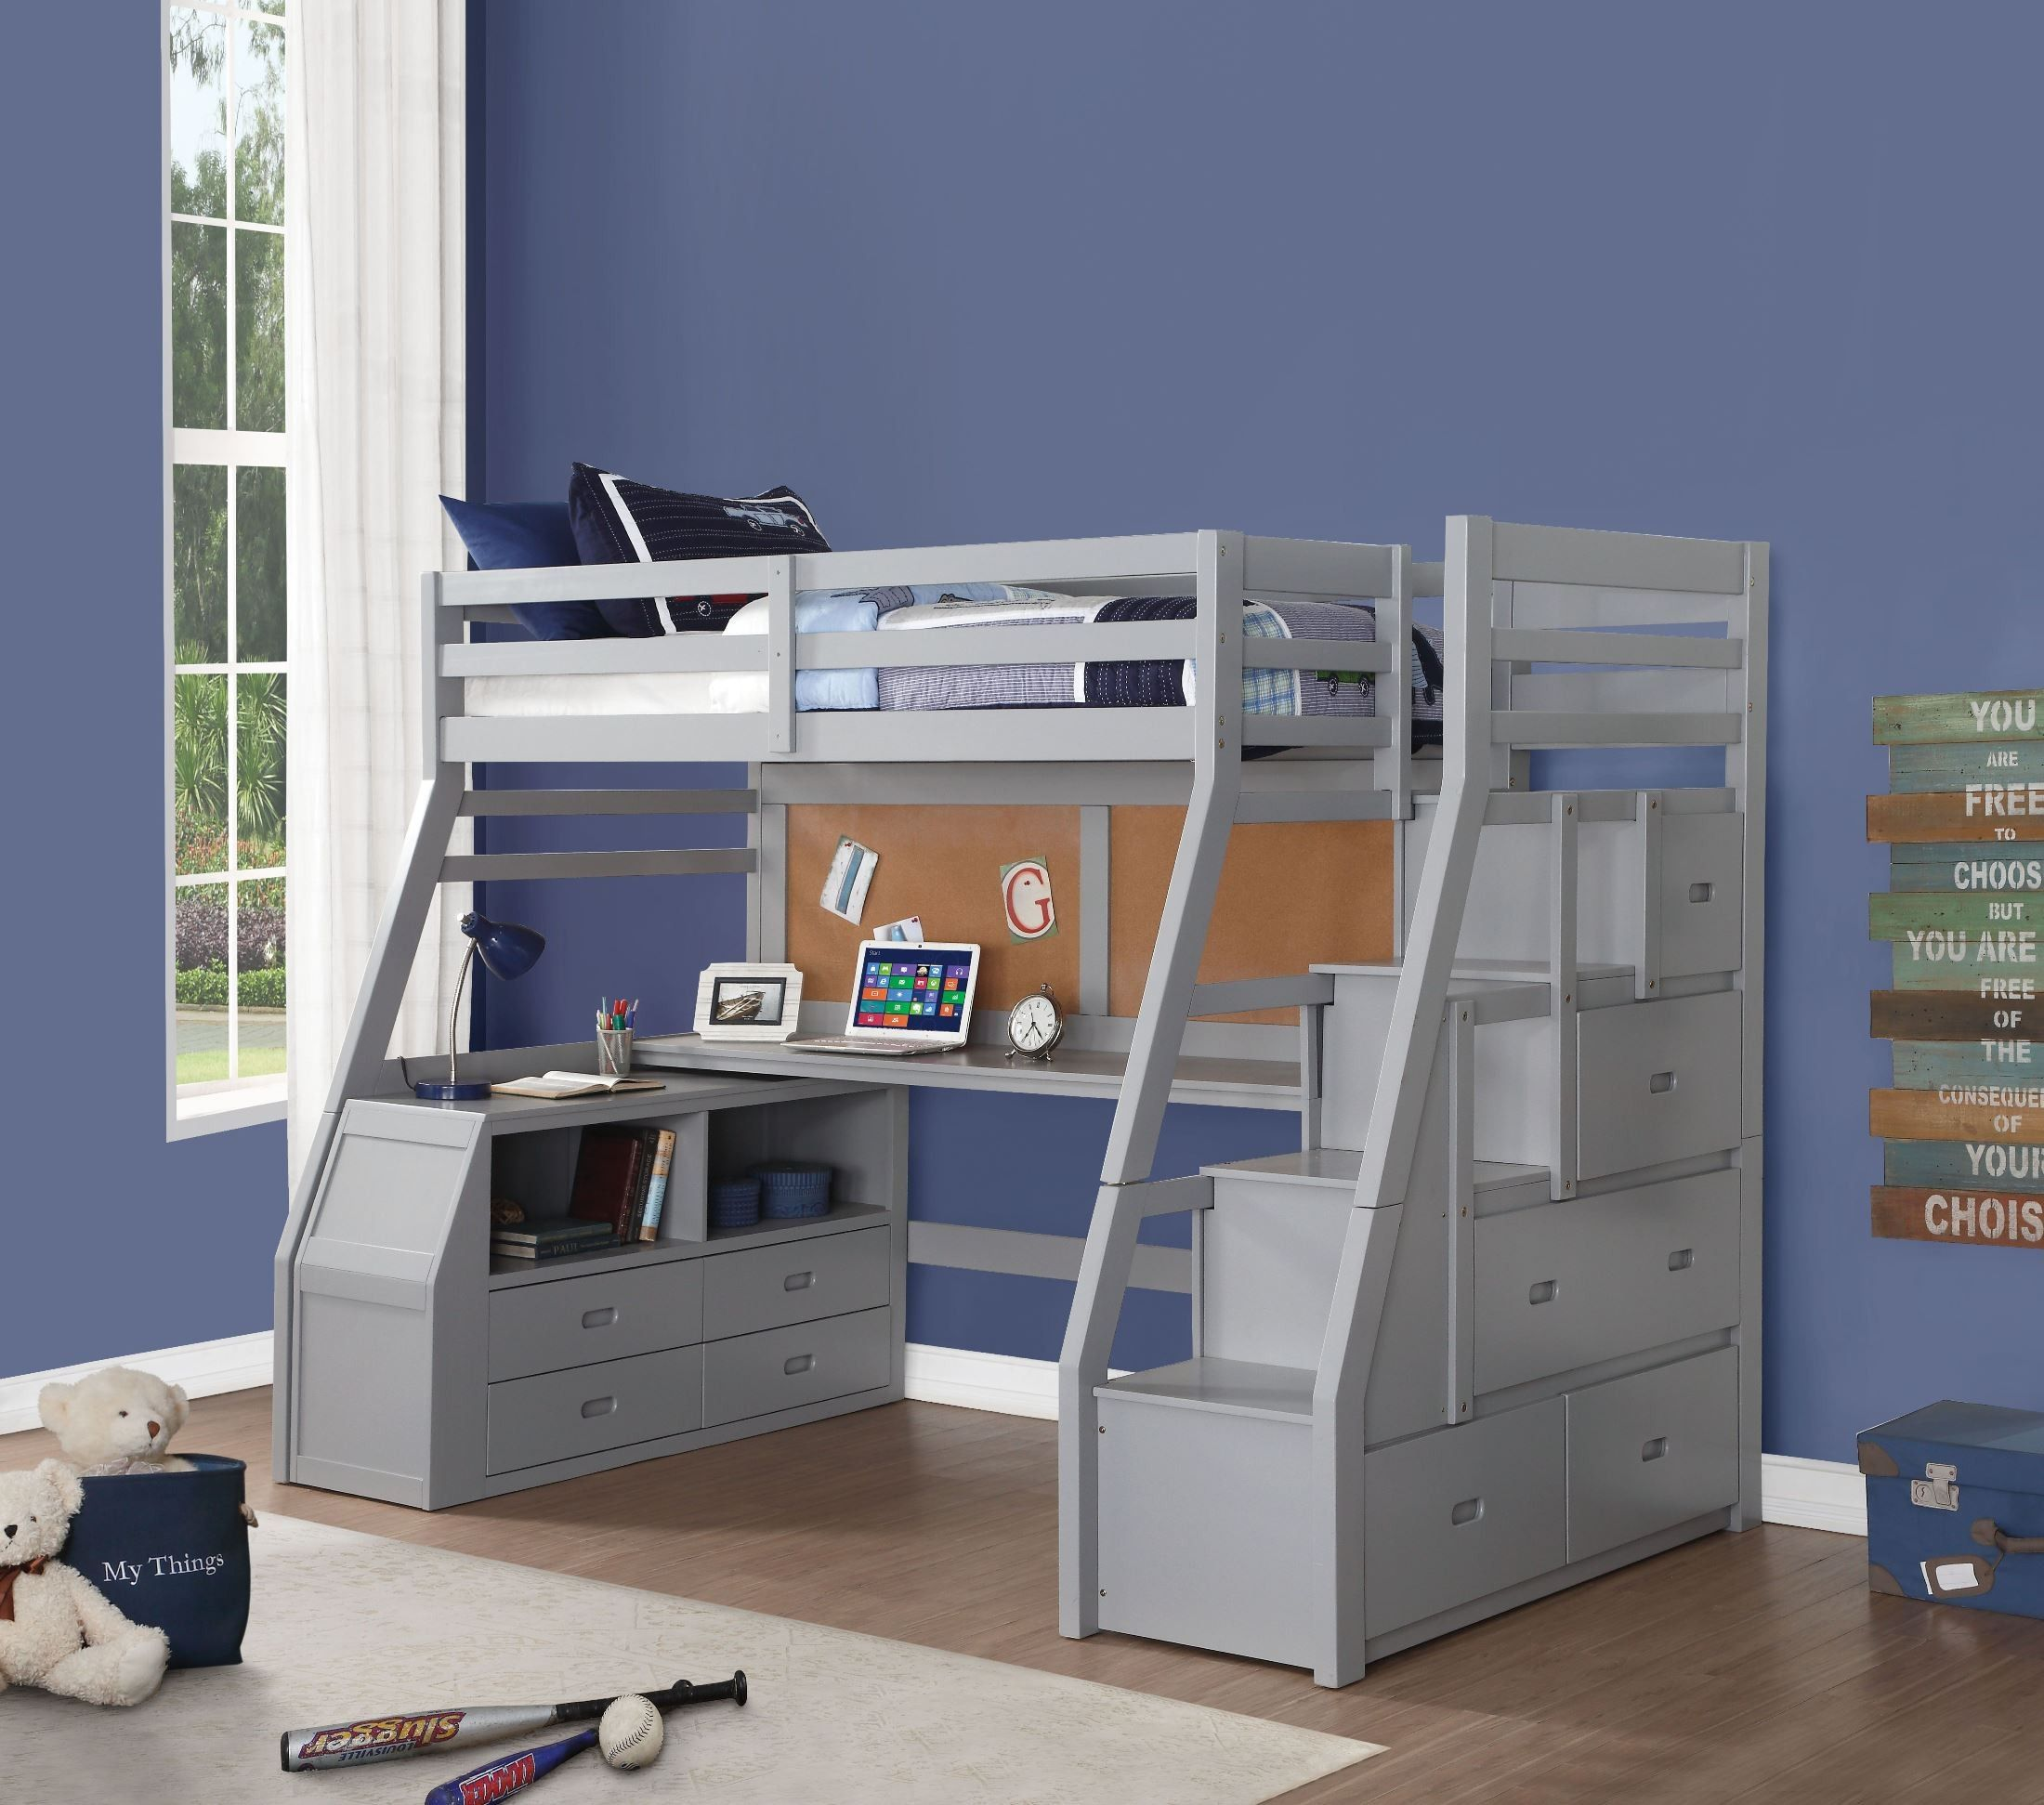 Jason Gray Ii Loft Bed With Storage Ladder Twin Size Loft Bed Twin Loft Bed Loft Bed Desk